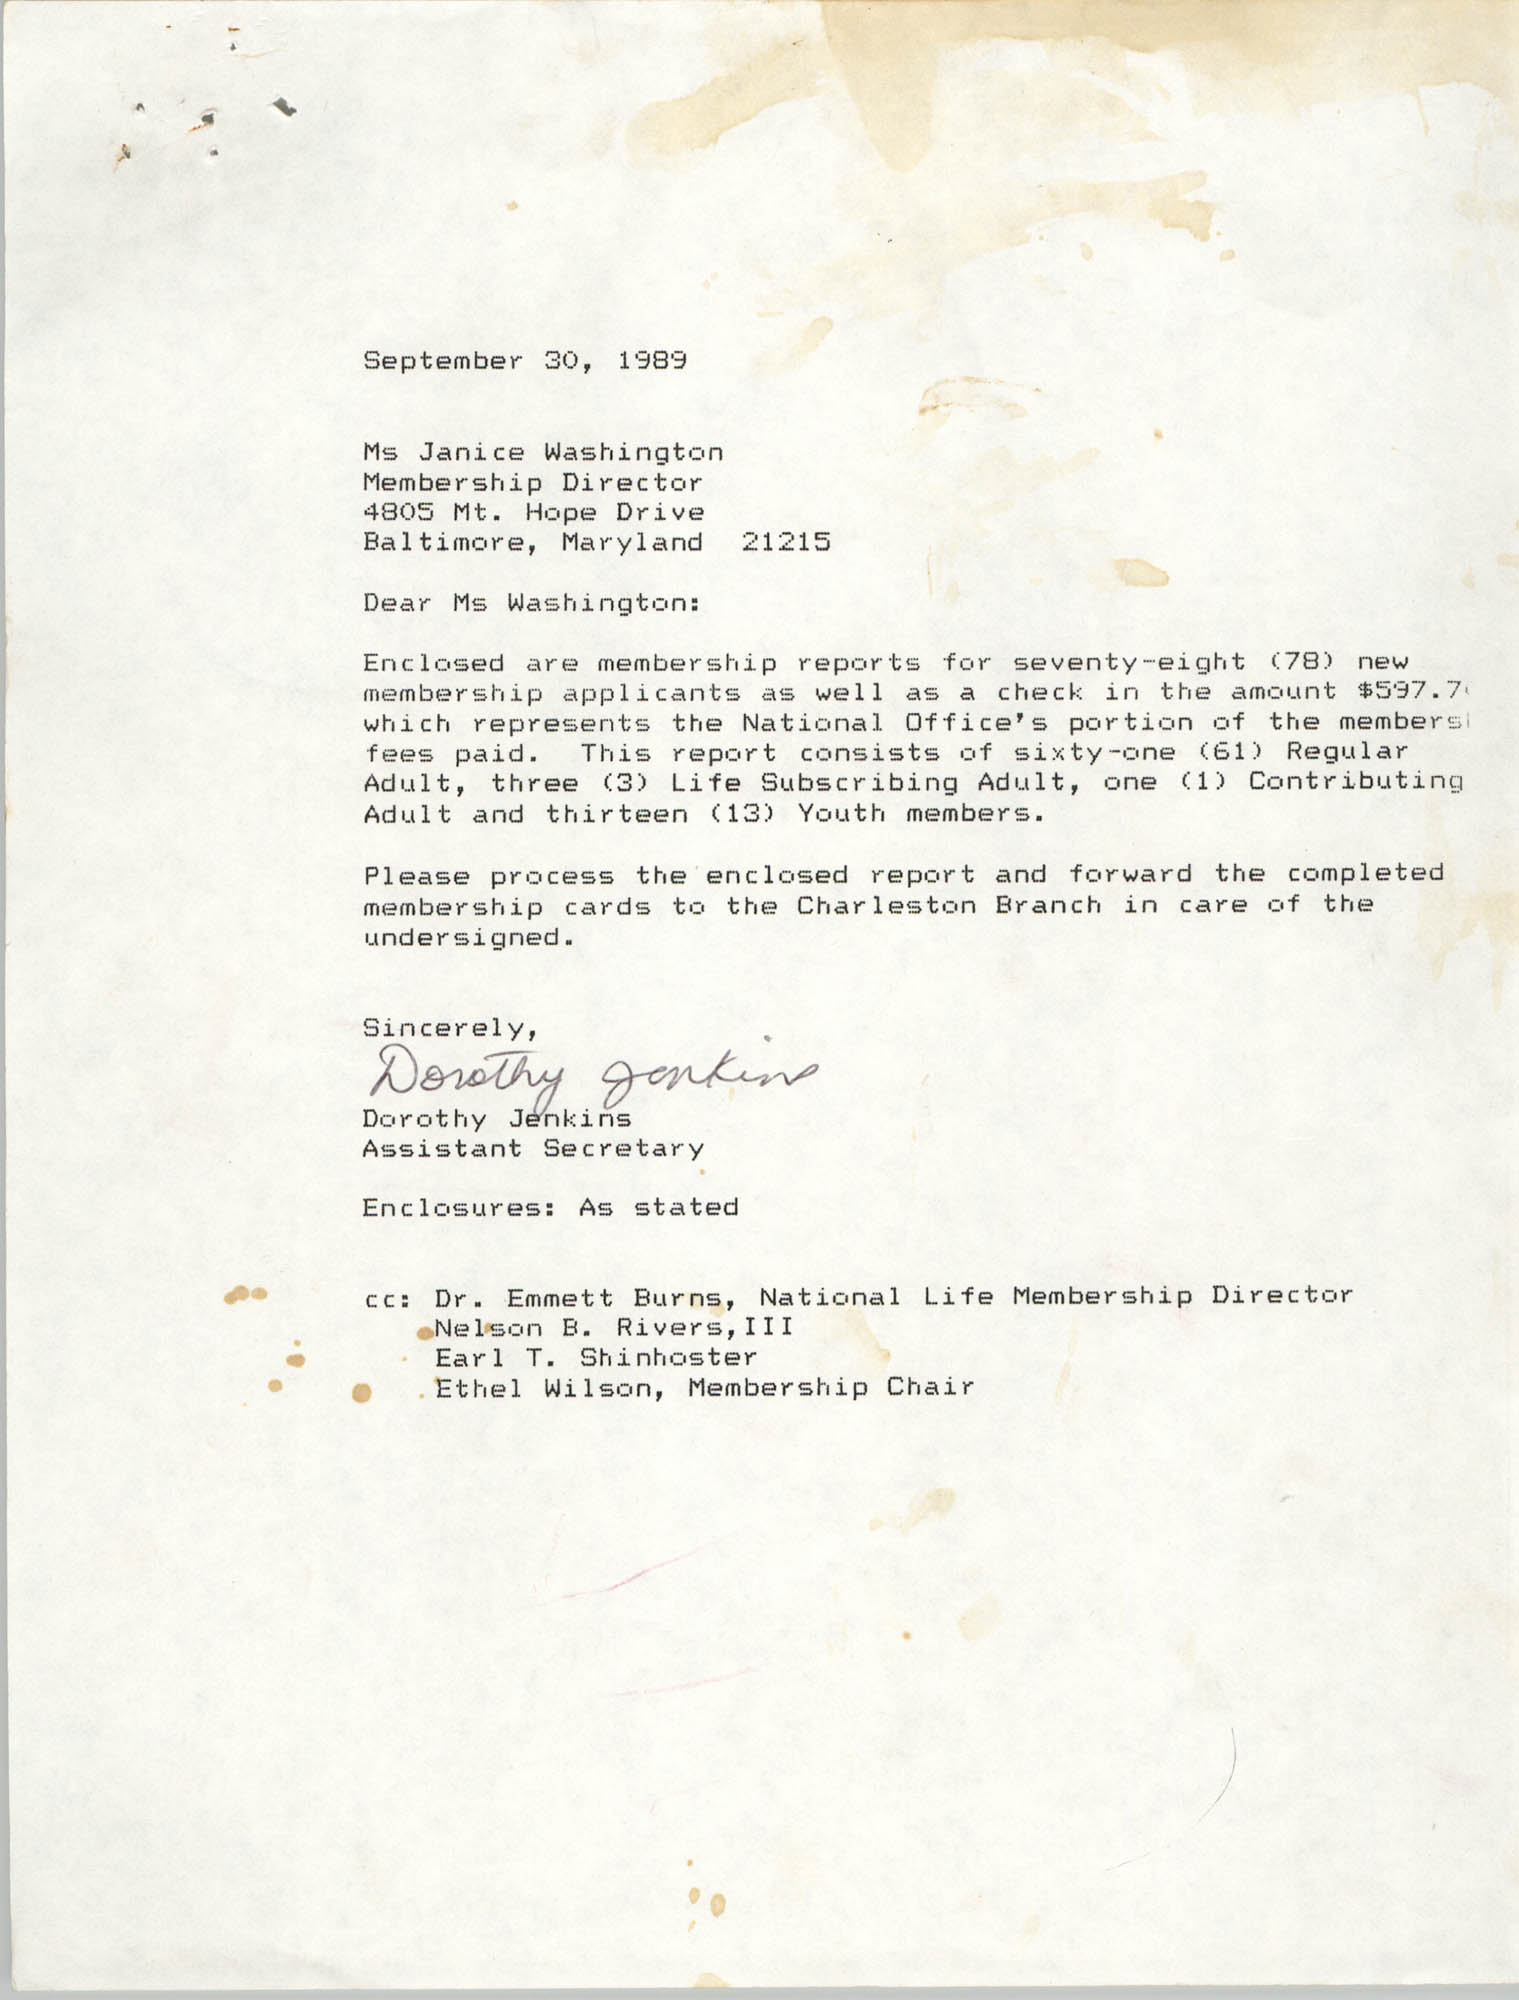 Letter from Dorothy Jenkins to Janice Washington, NAACP, September 30, 1989